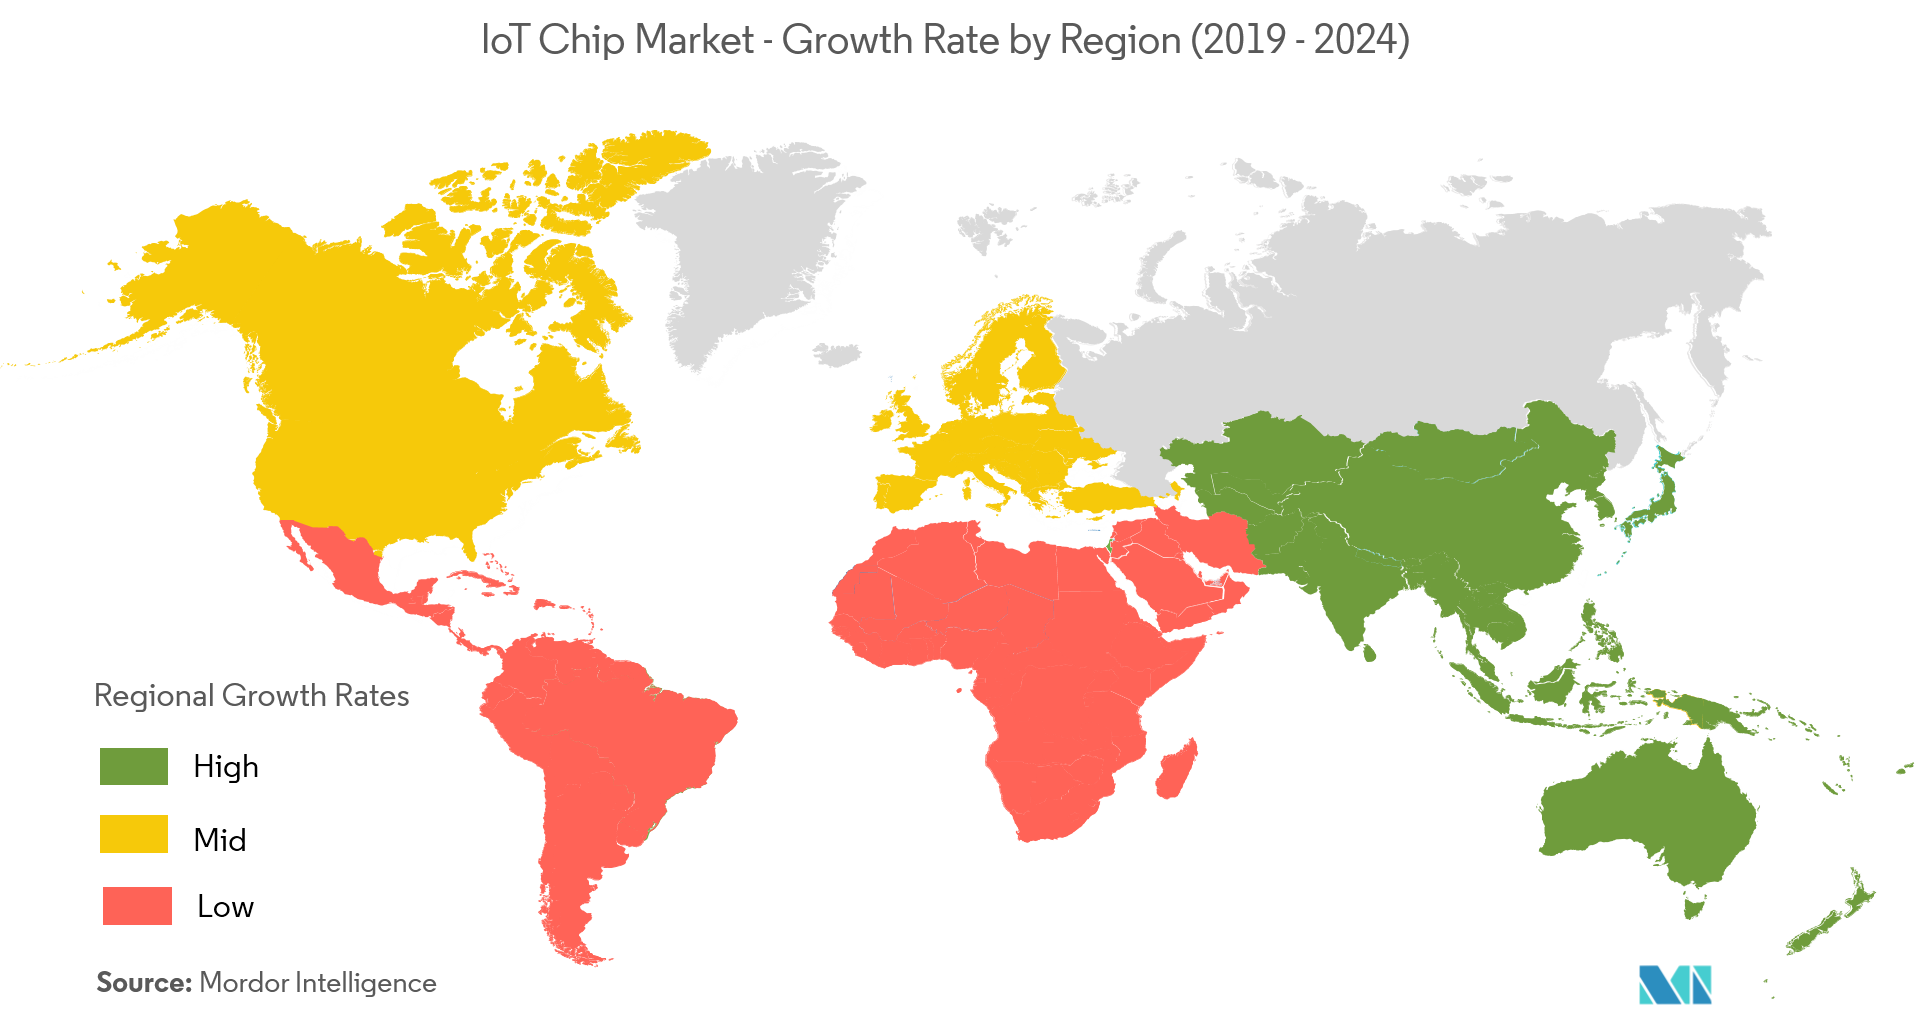 IoT Chip Market Growth Rate By Region